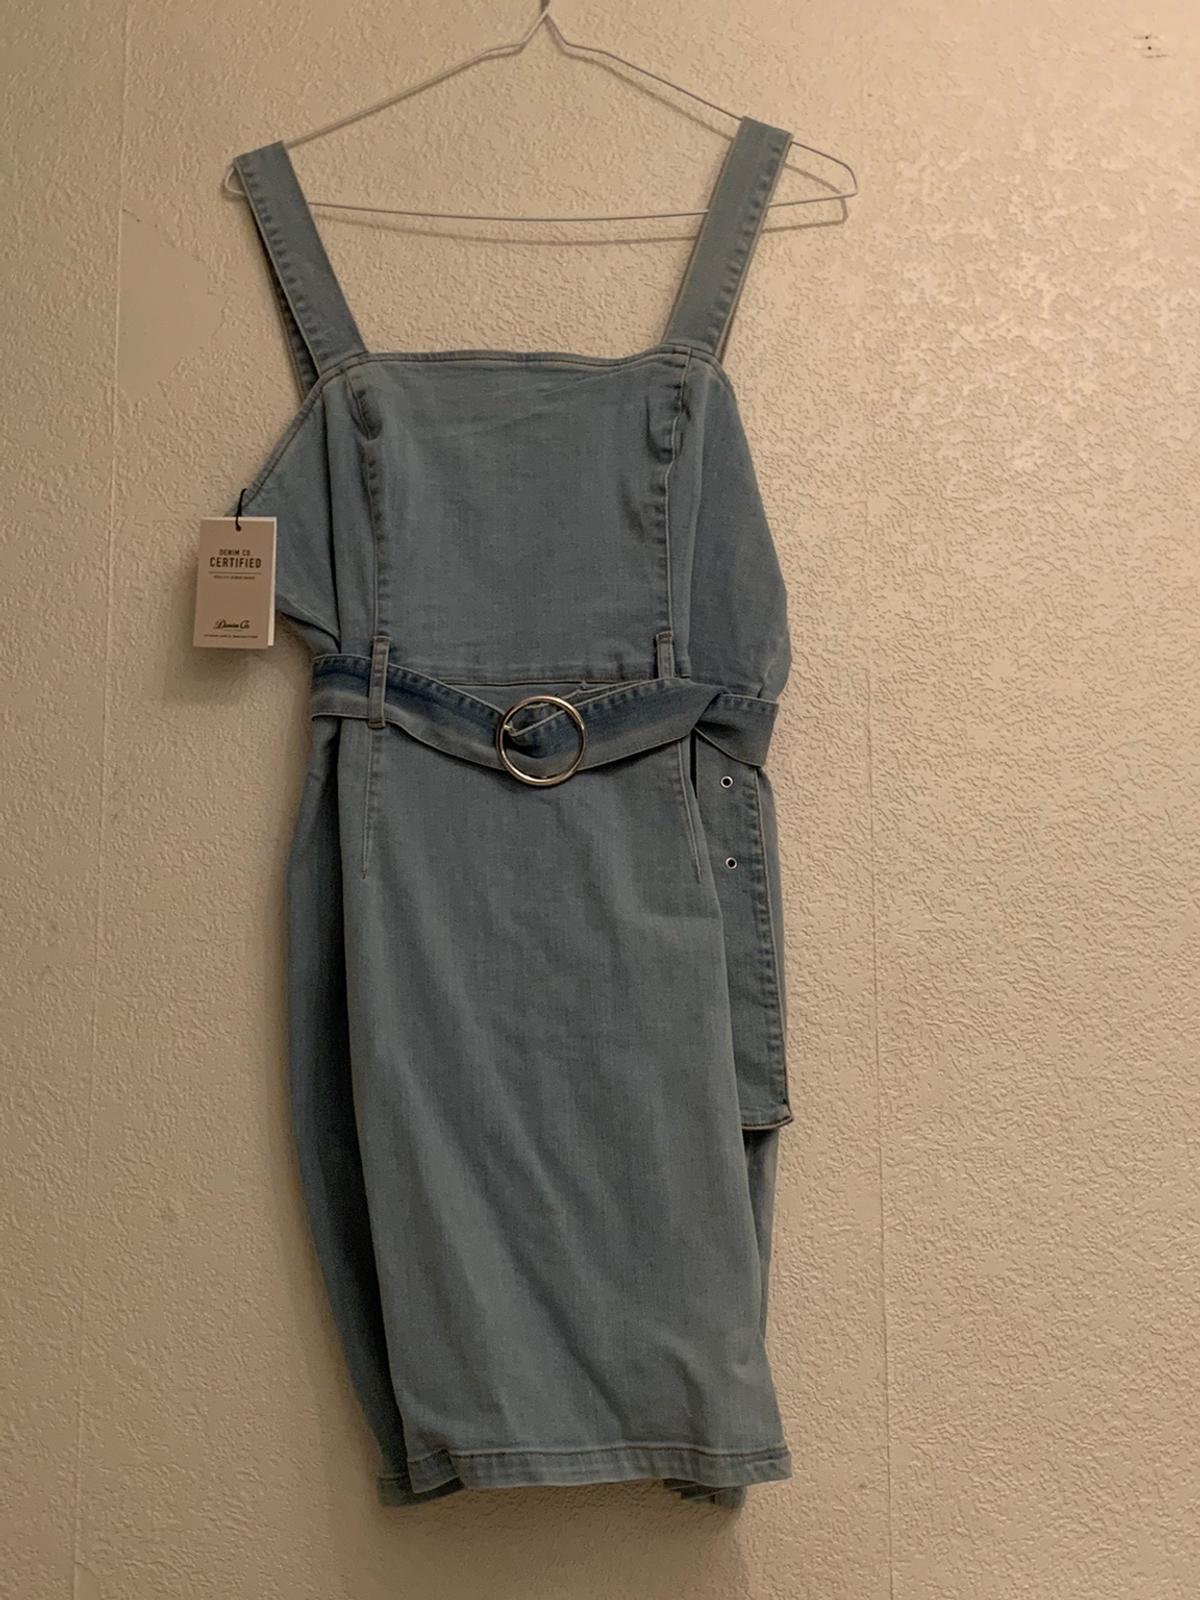 Primark denim summer dress New with tags Size 16 true to size